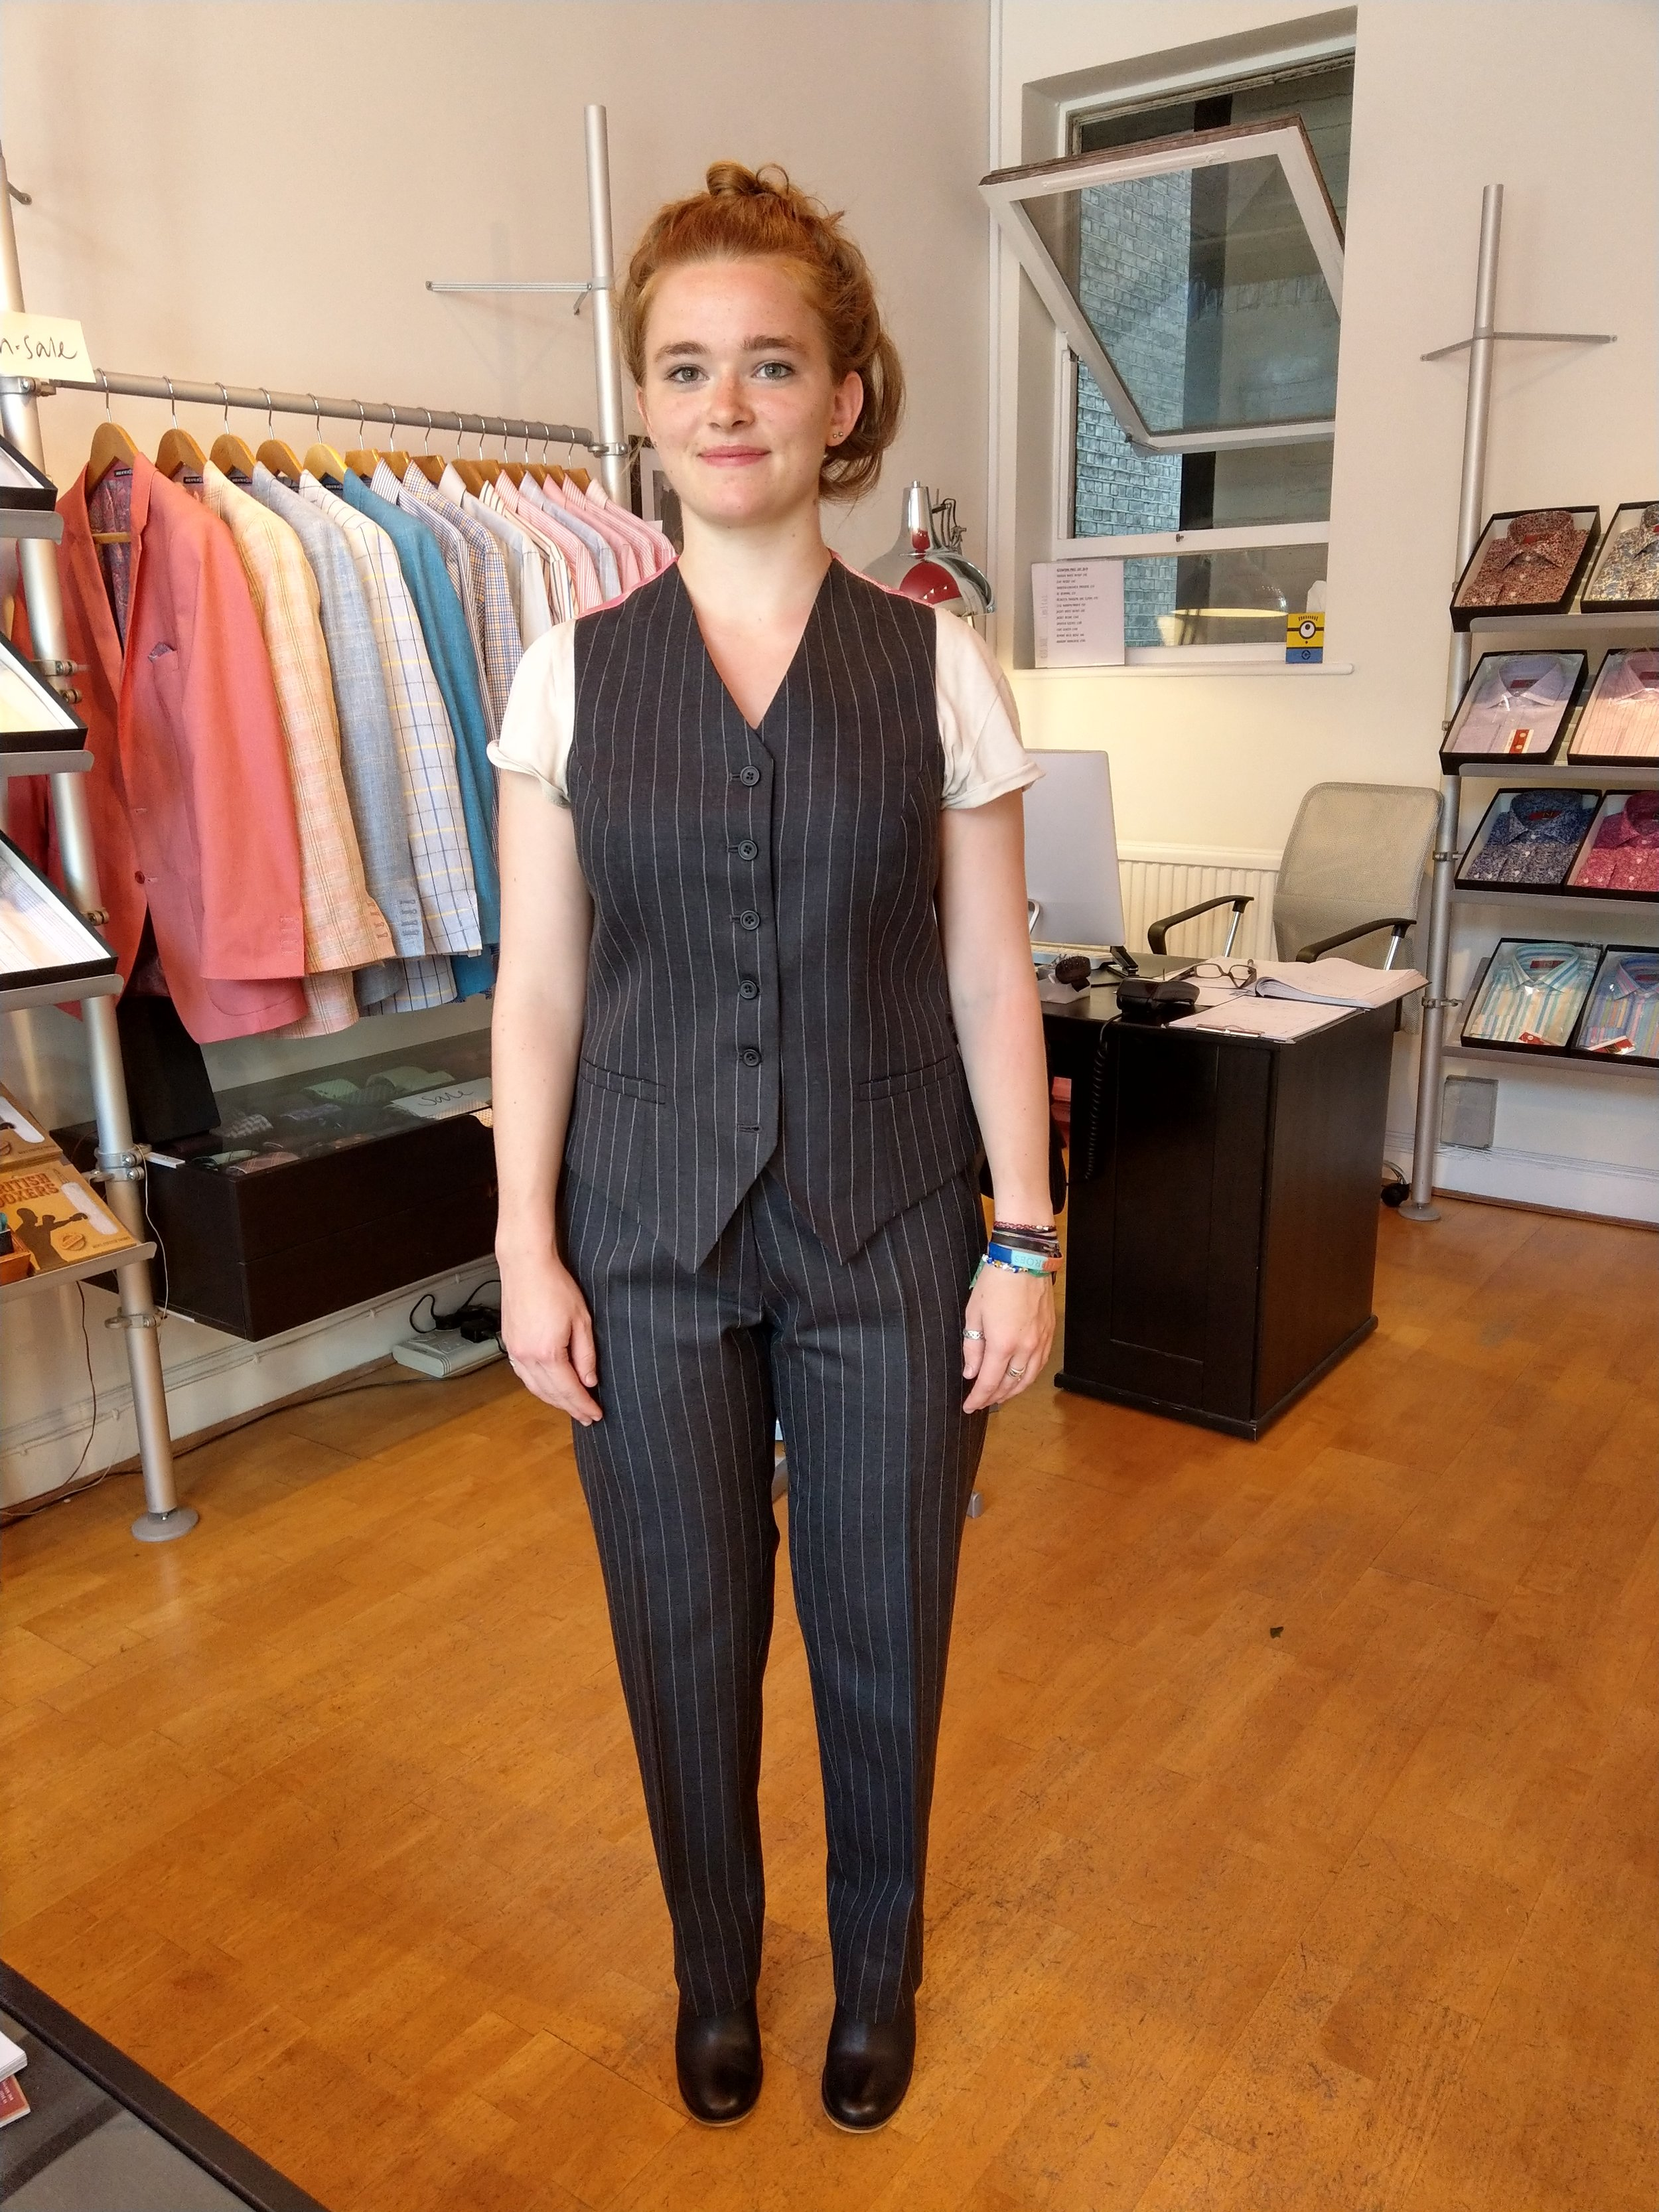 hall-tailors-bespoke-suit-ladies-vintage-retro-style-pin-stripe-dugdale-uk-made.jpg